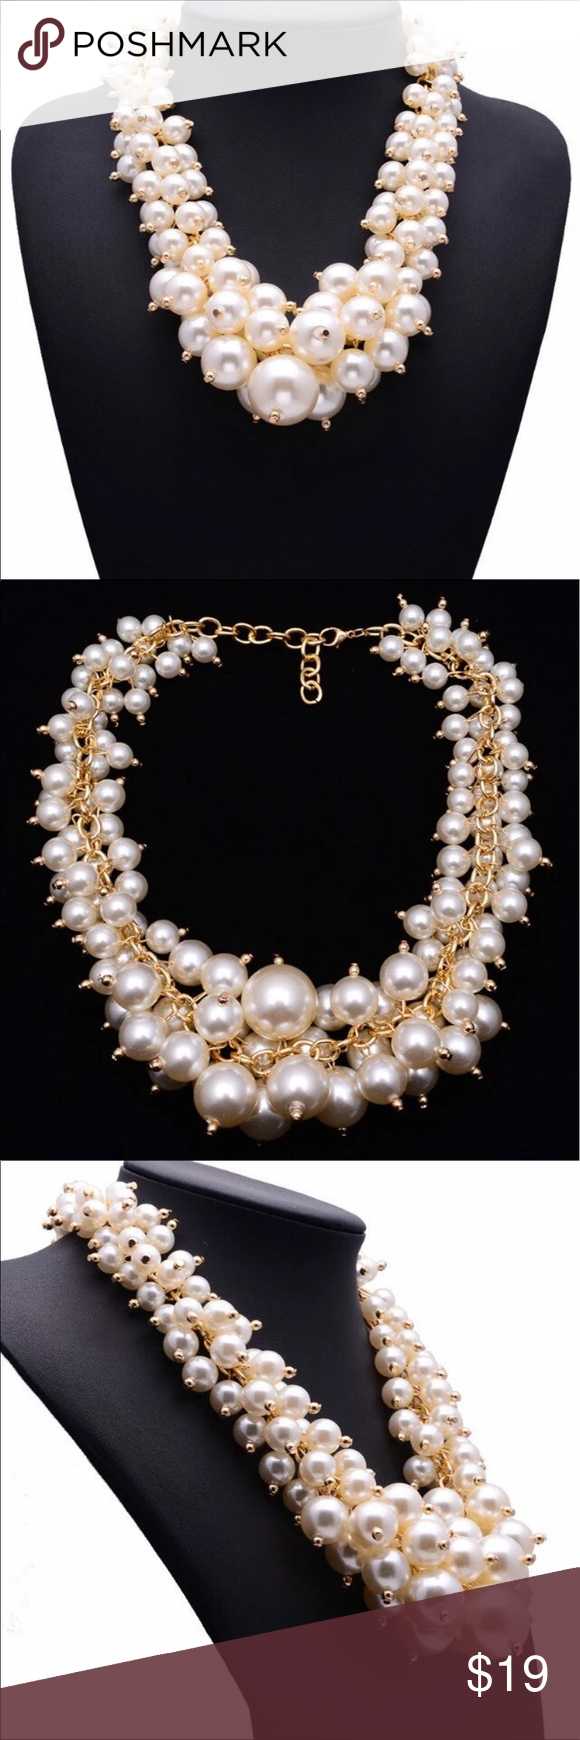 New Pearl Layered Statement Necklace Stunning Best lady New Arrival Fashion Simulated Pearl Choker Necklace Luxury Statement Good Quality Jewelry Hotsale Necklace 9954 Dallas Stylez Jewelry Necklaces